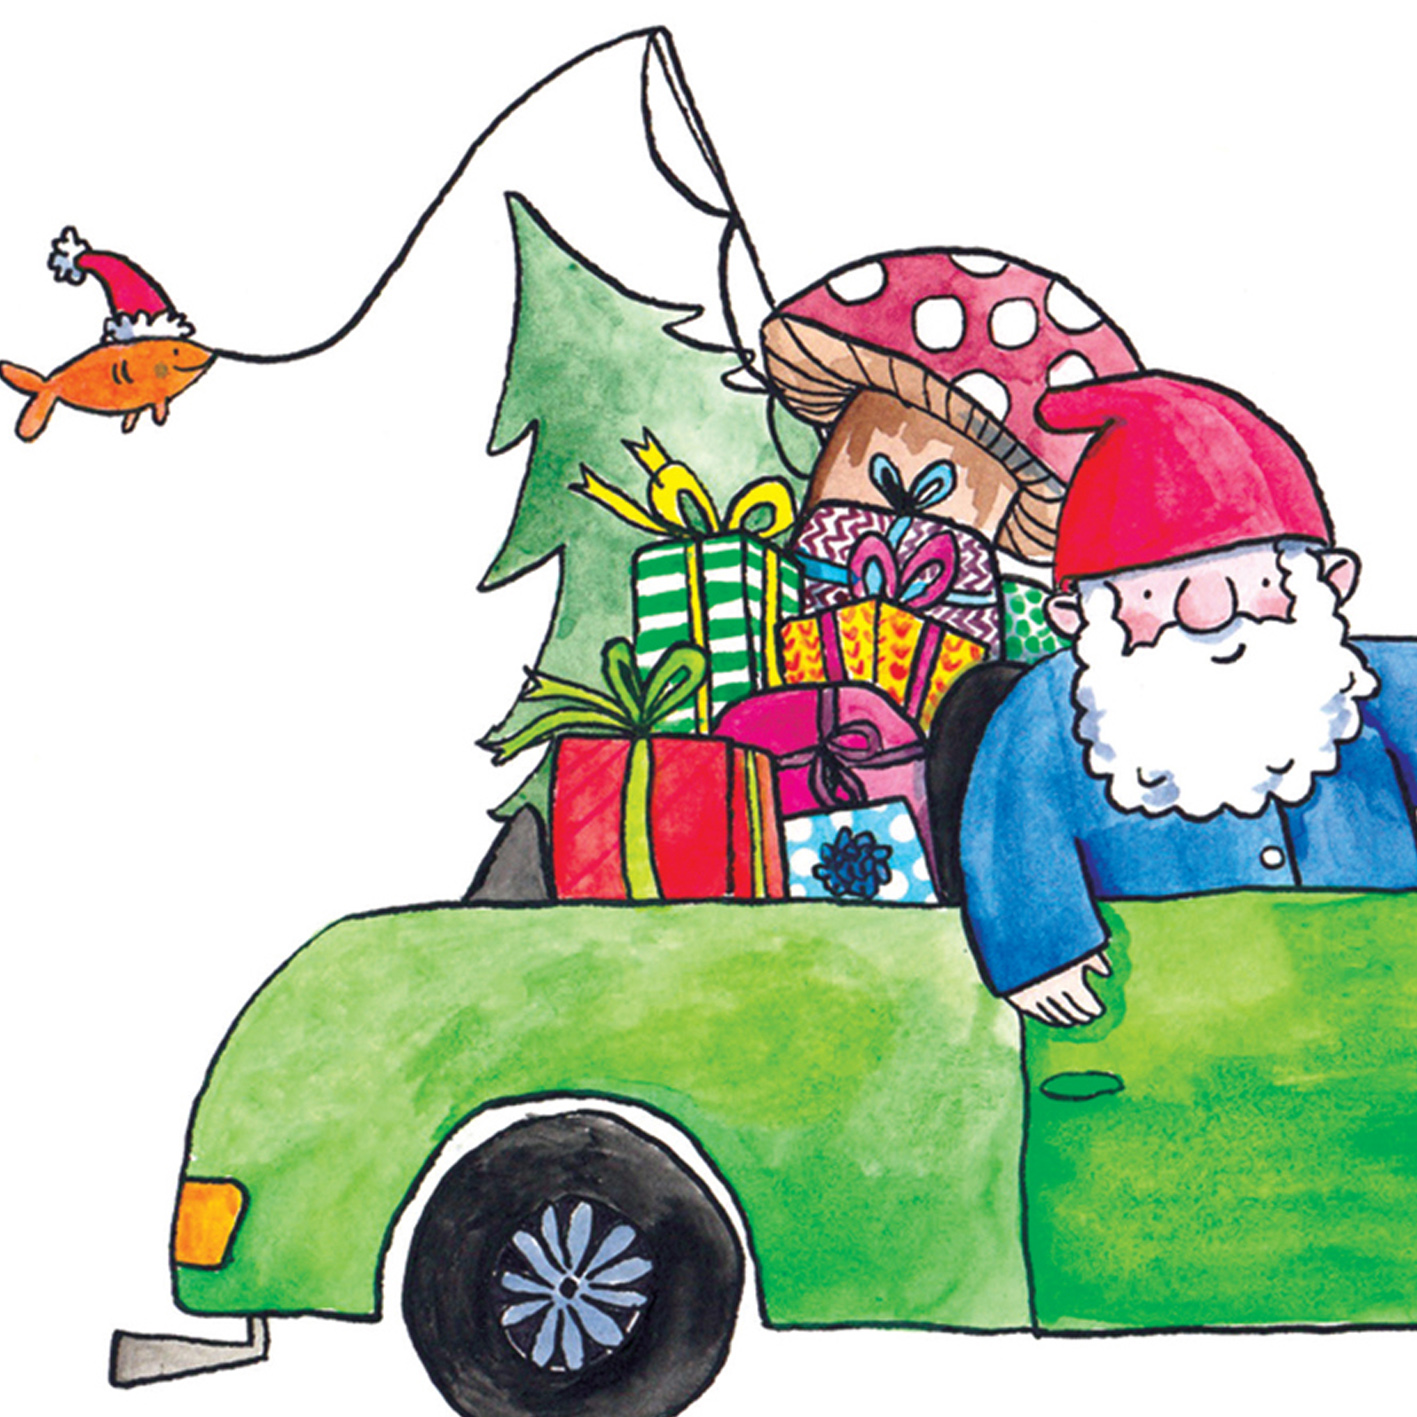 Driving-Gnome_-Driving-home-for-Christmas-pun-Christmas-card_CH14_CU